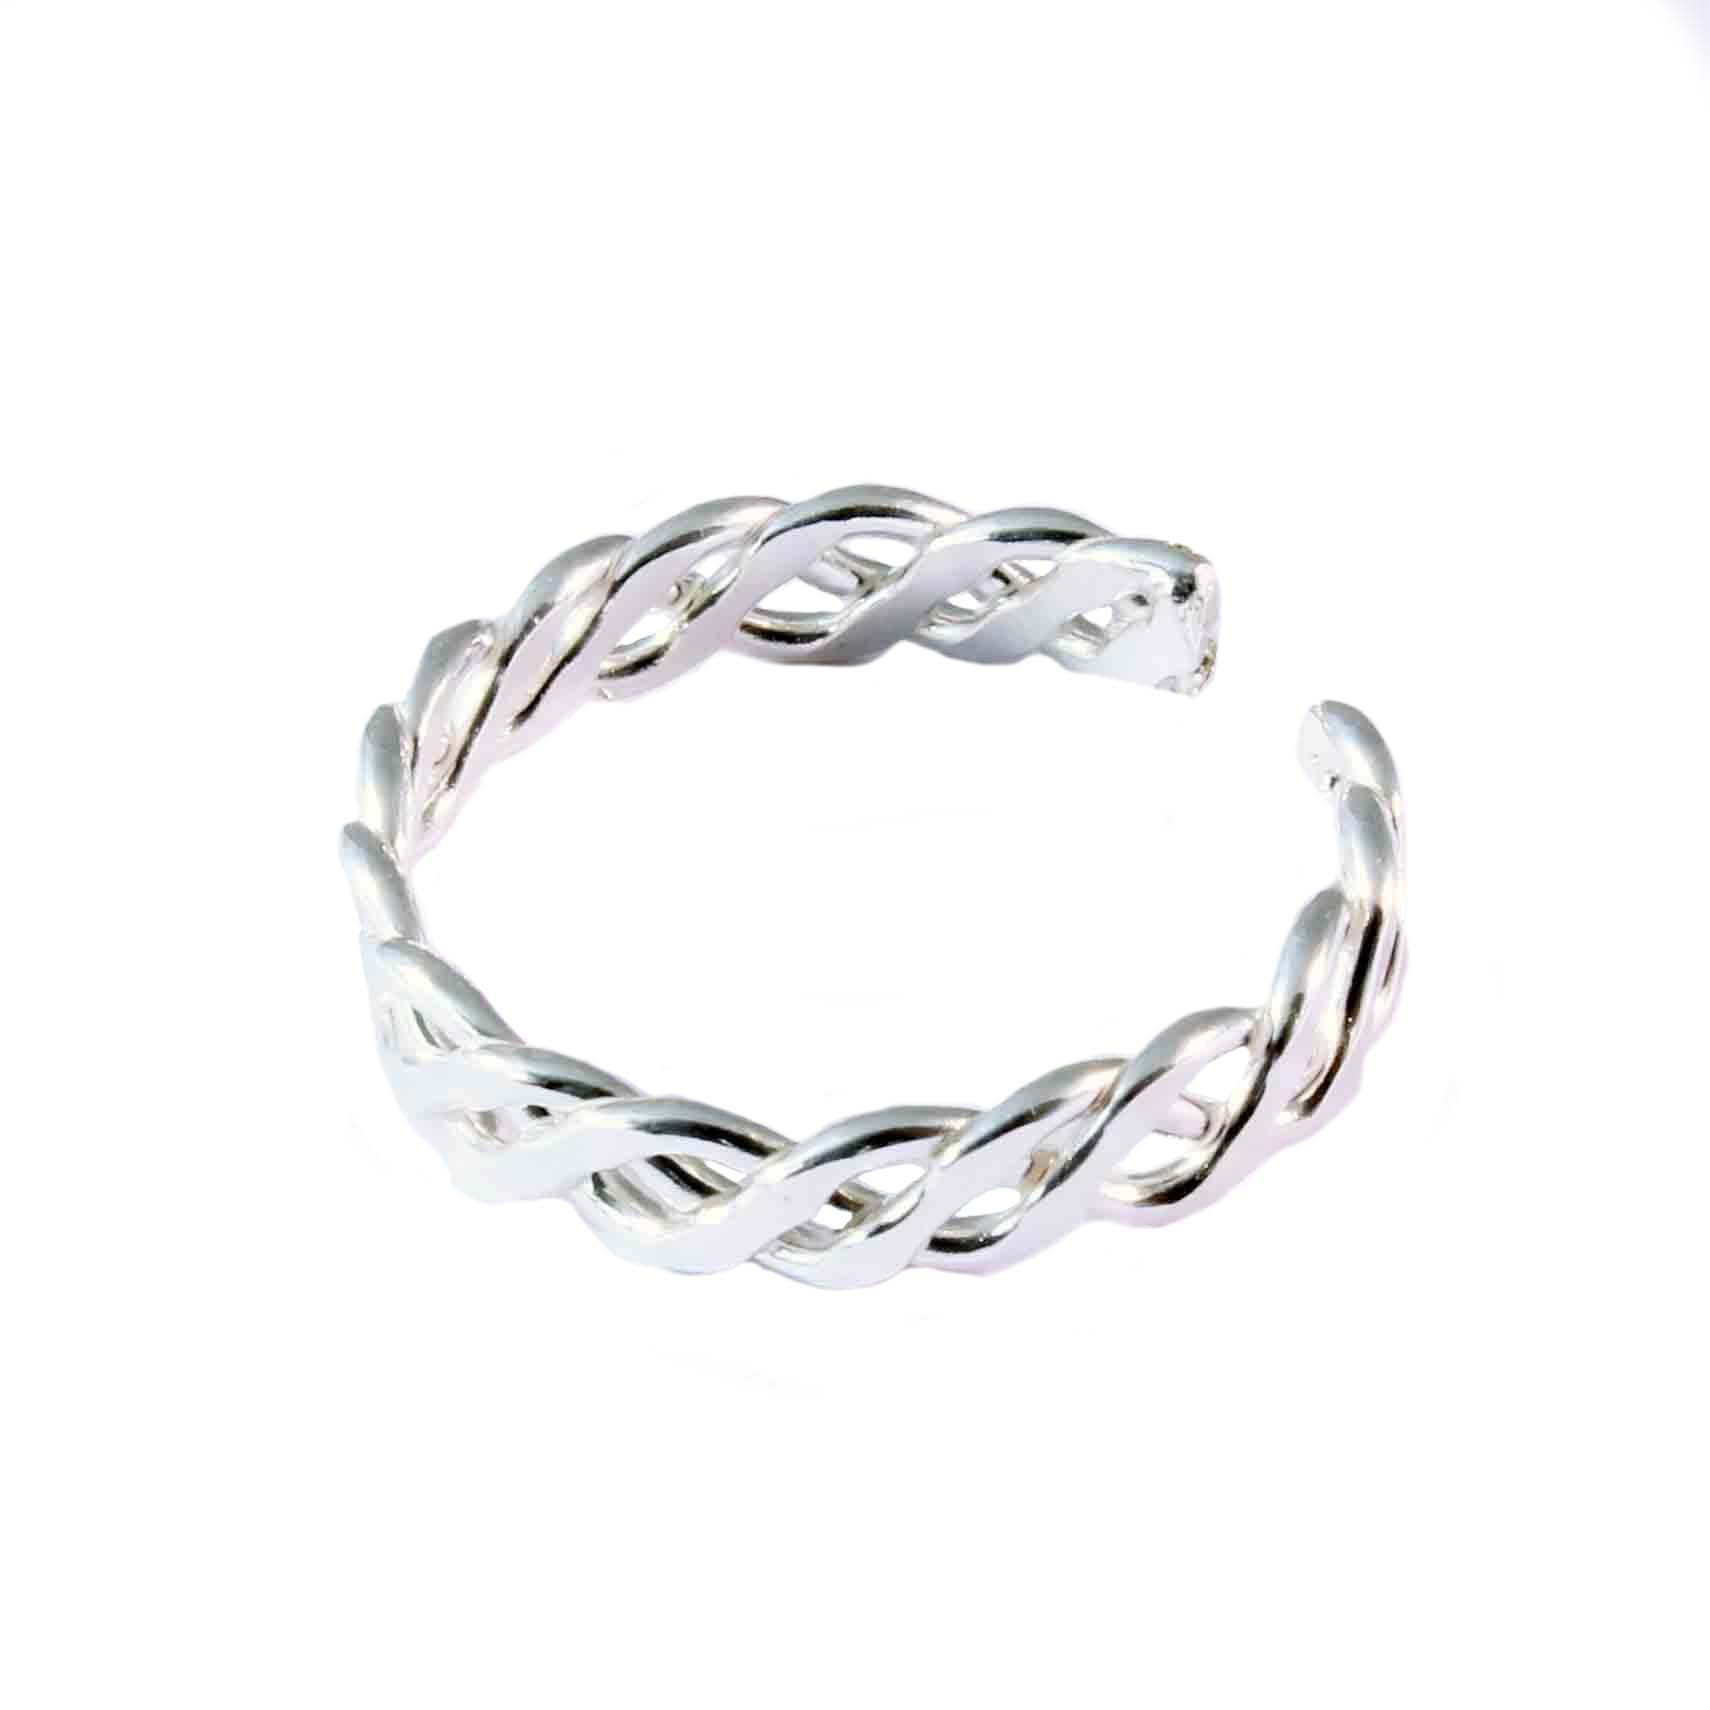 charm school uk gt sterling silver toe rings gt braided design